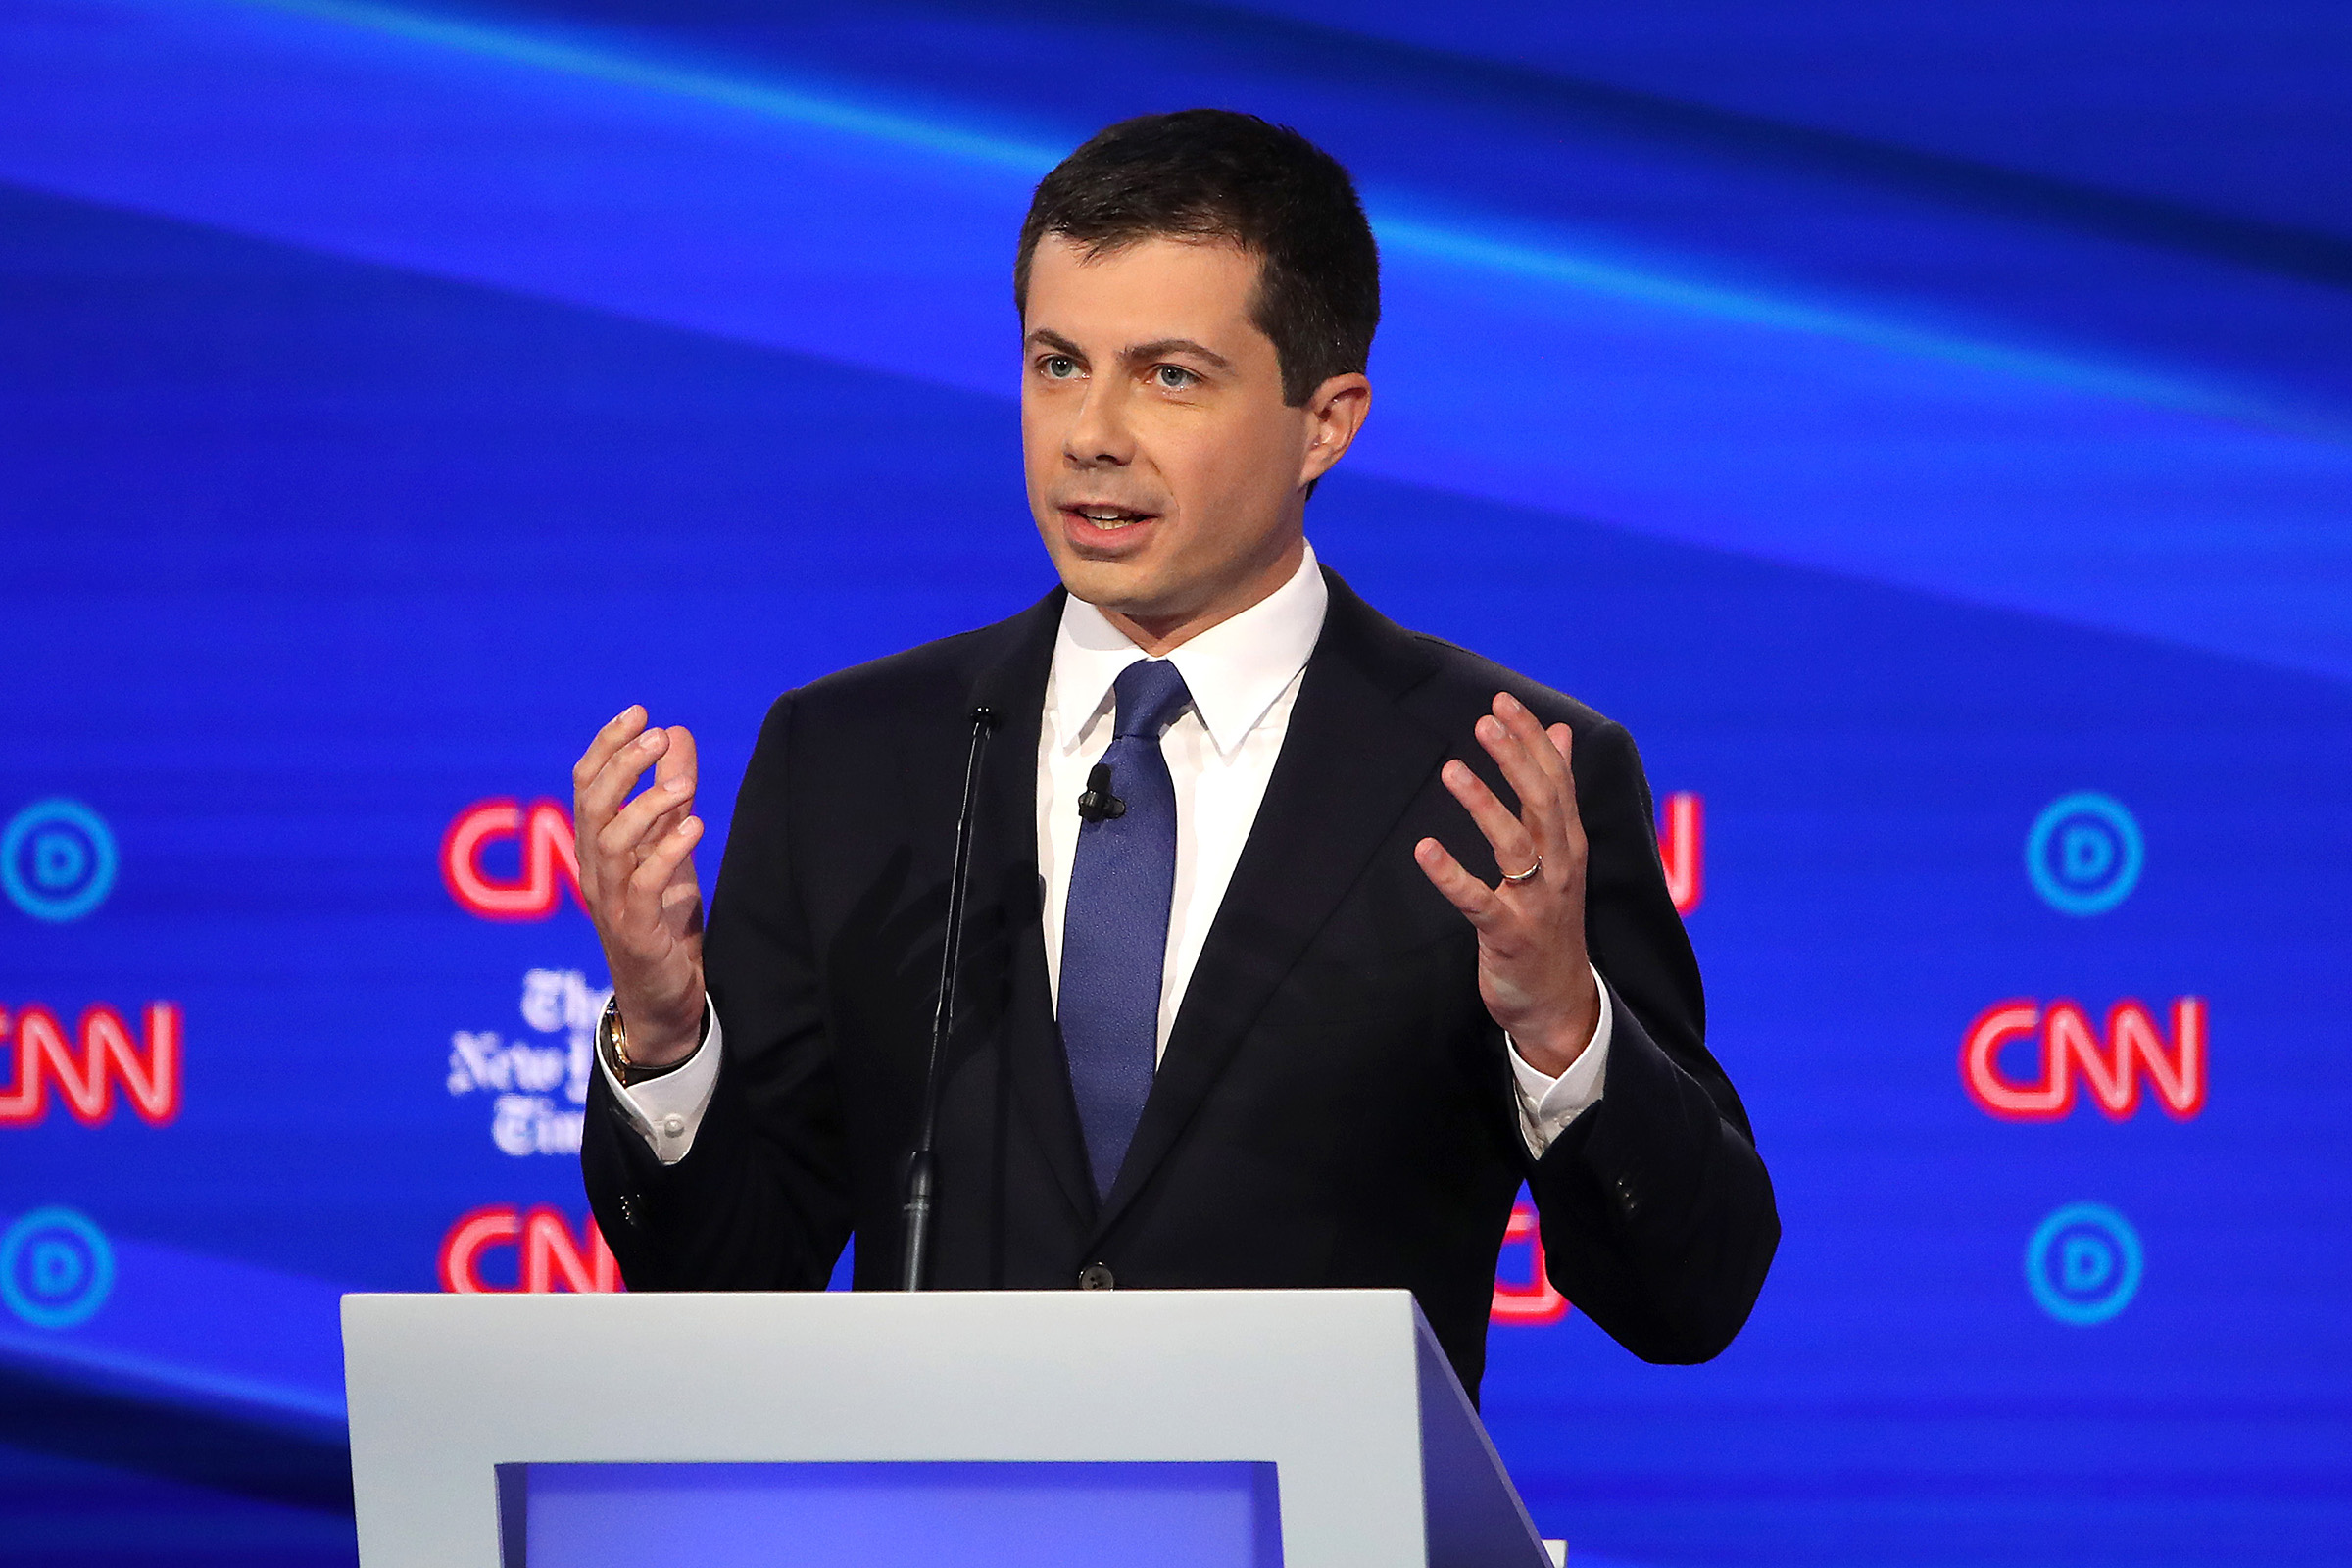 South Bend, Indiana Mayor Pete Buttigieg speaks during the Democratic Presidential Debate at Otterbein University on Oct. 15, 2019 in Westerville, Ohio.